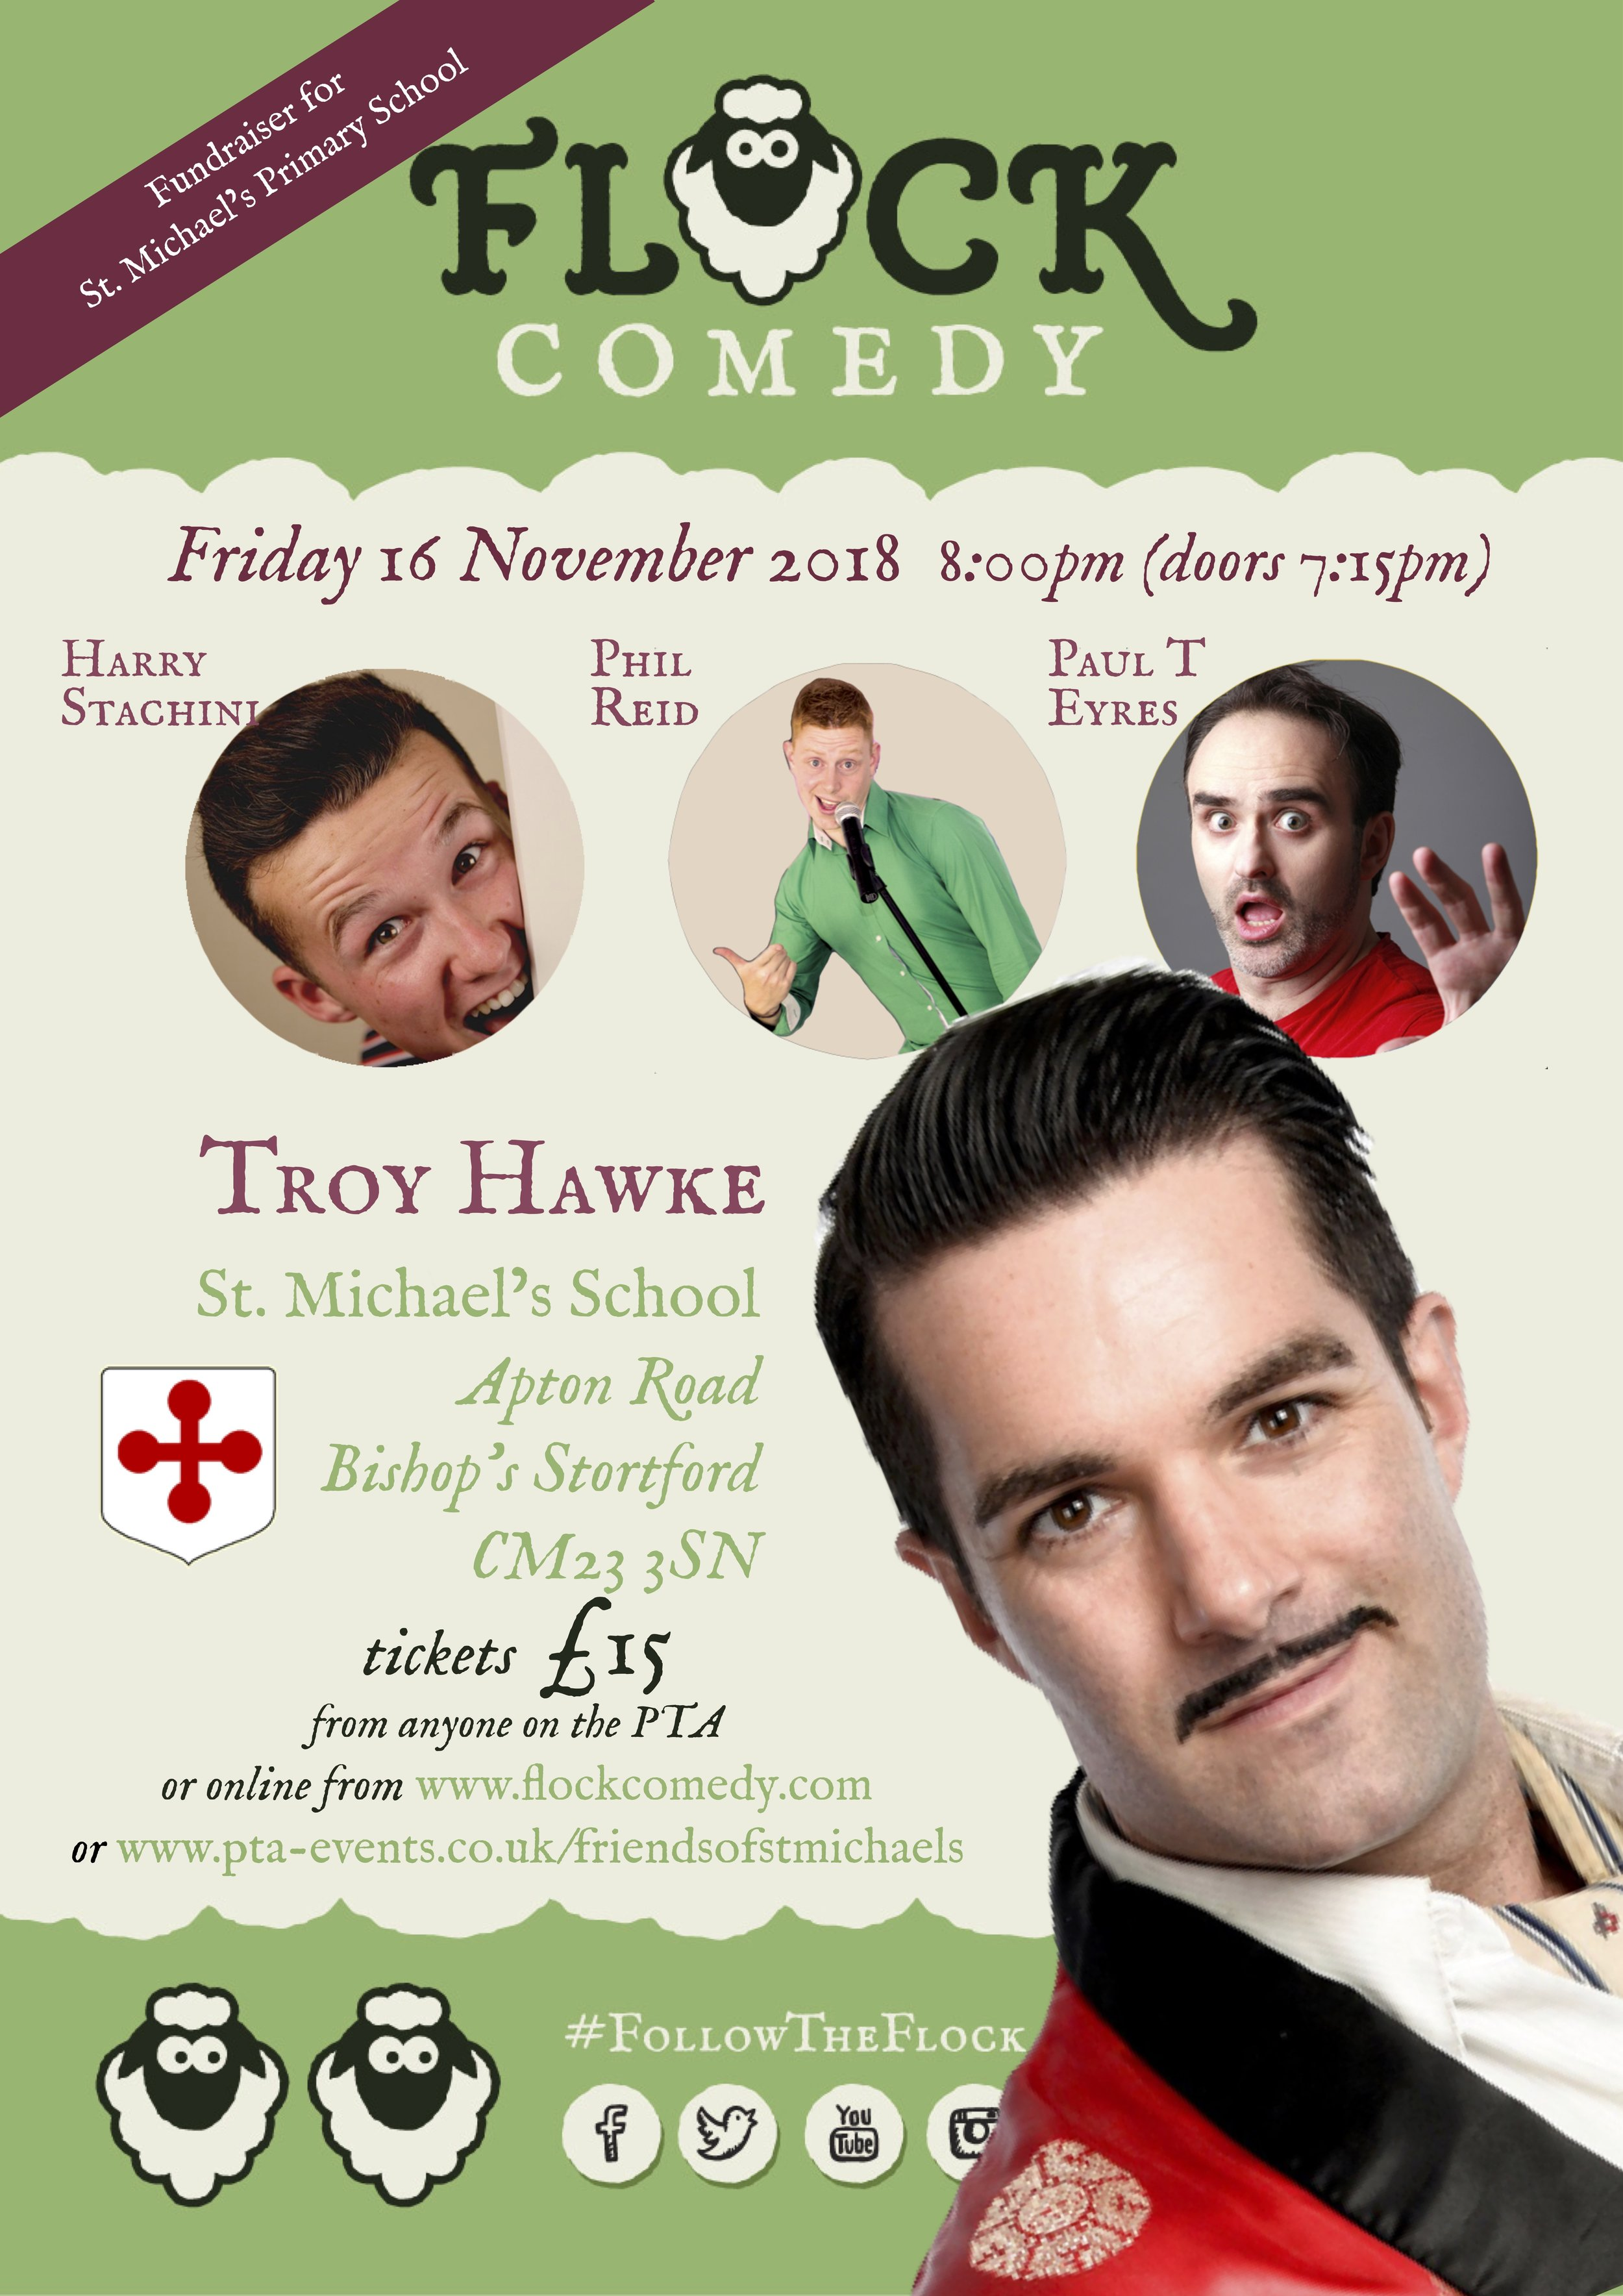 Flock Comedy returns to Bishops' Stortford with Troy Hawke, Paul T Eyres and Harry Stachini